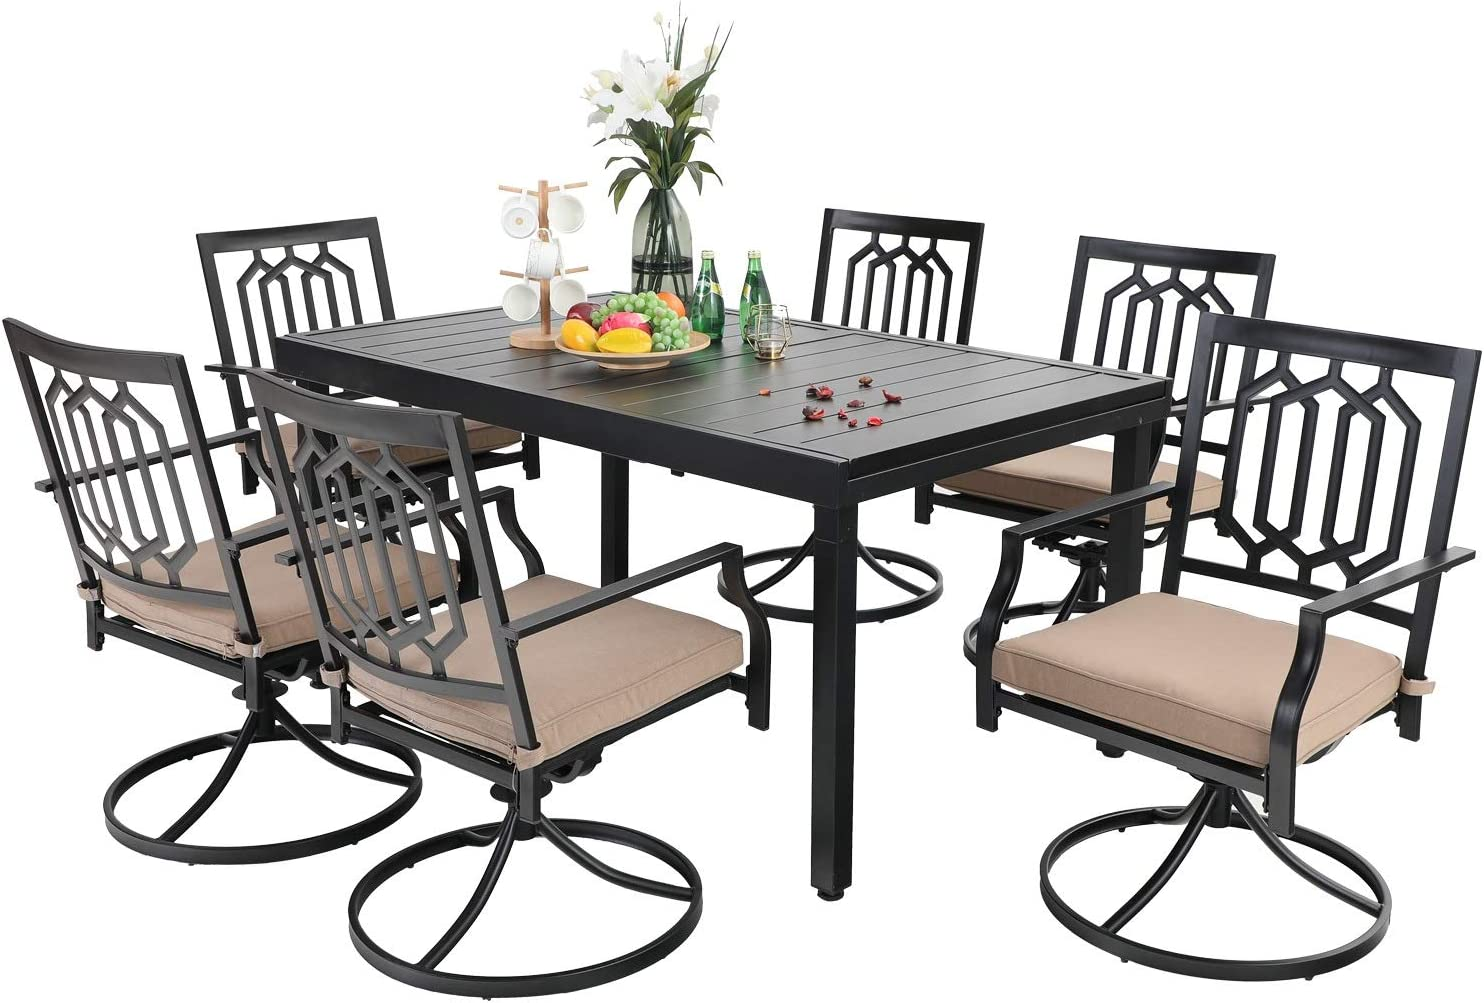 Buy PHI VILLA 100 Piece Patio Dining Set,10 Extendable Dining Table ...